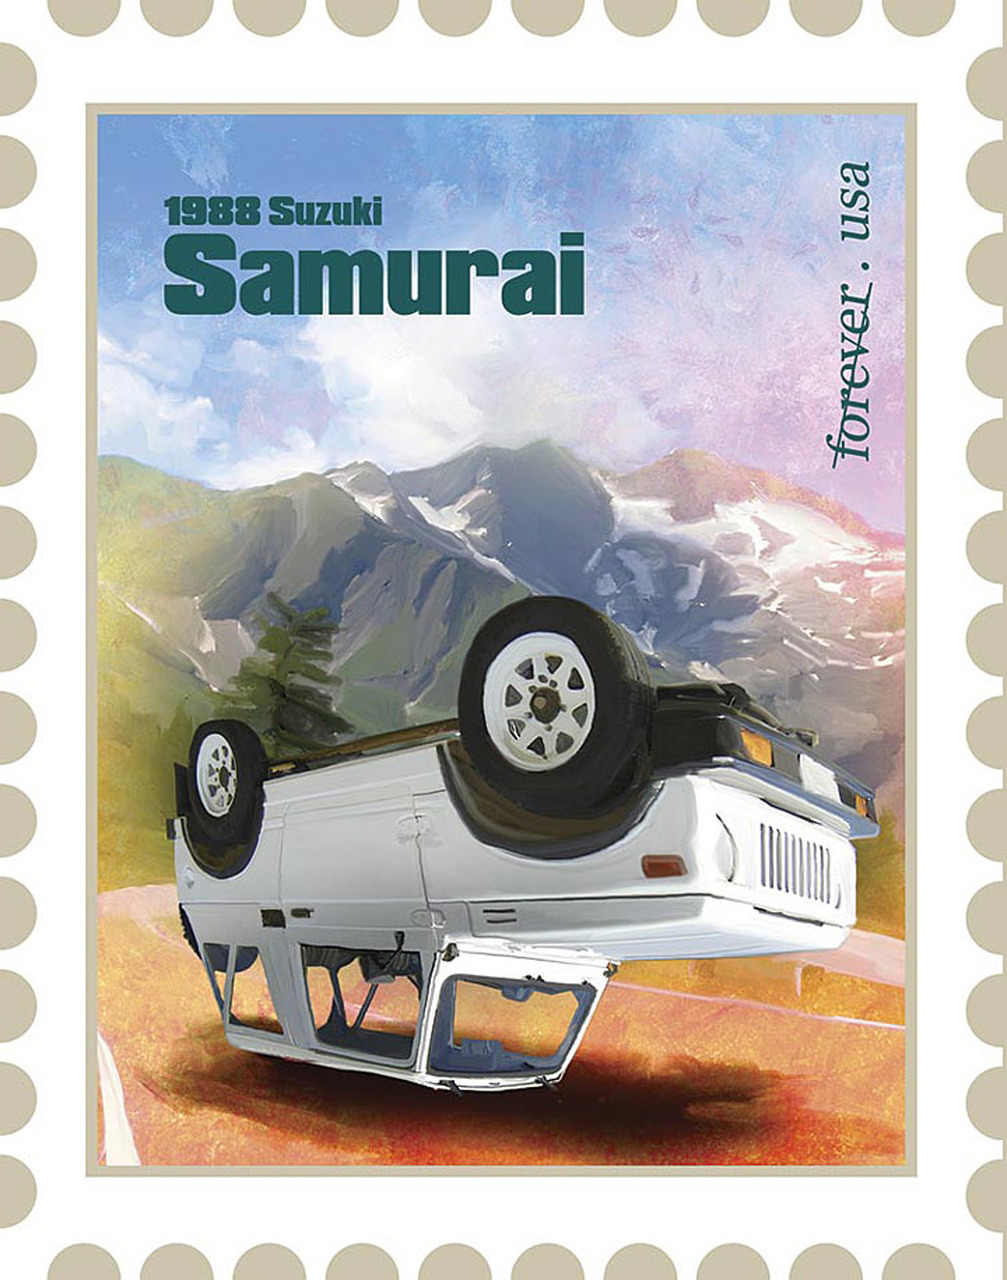 7 Special Edition Car Stamps You'll Probably Never See